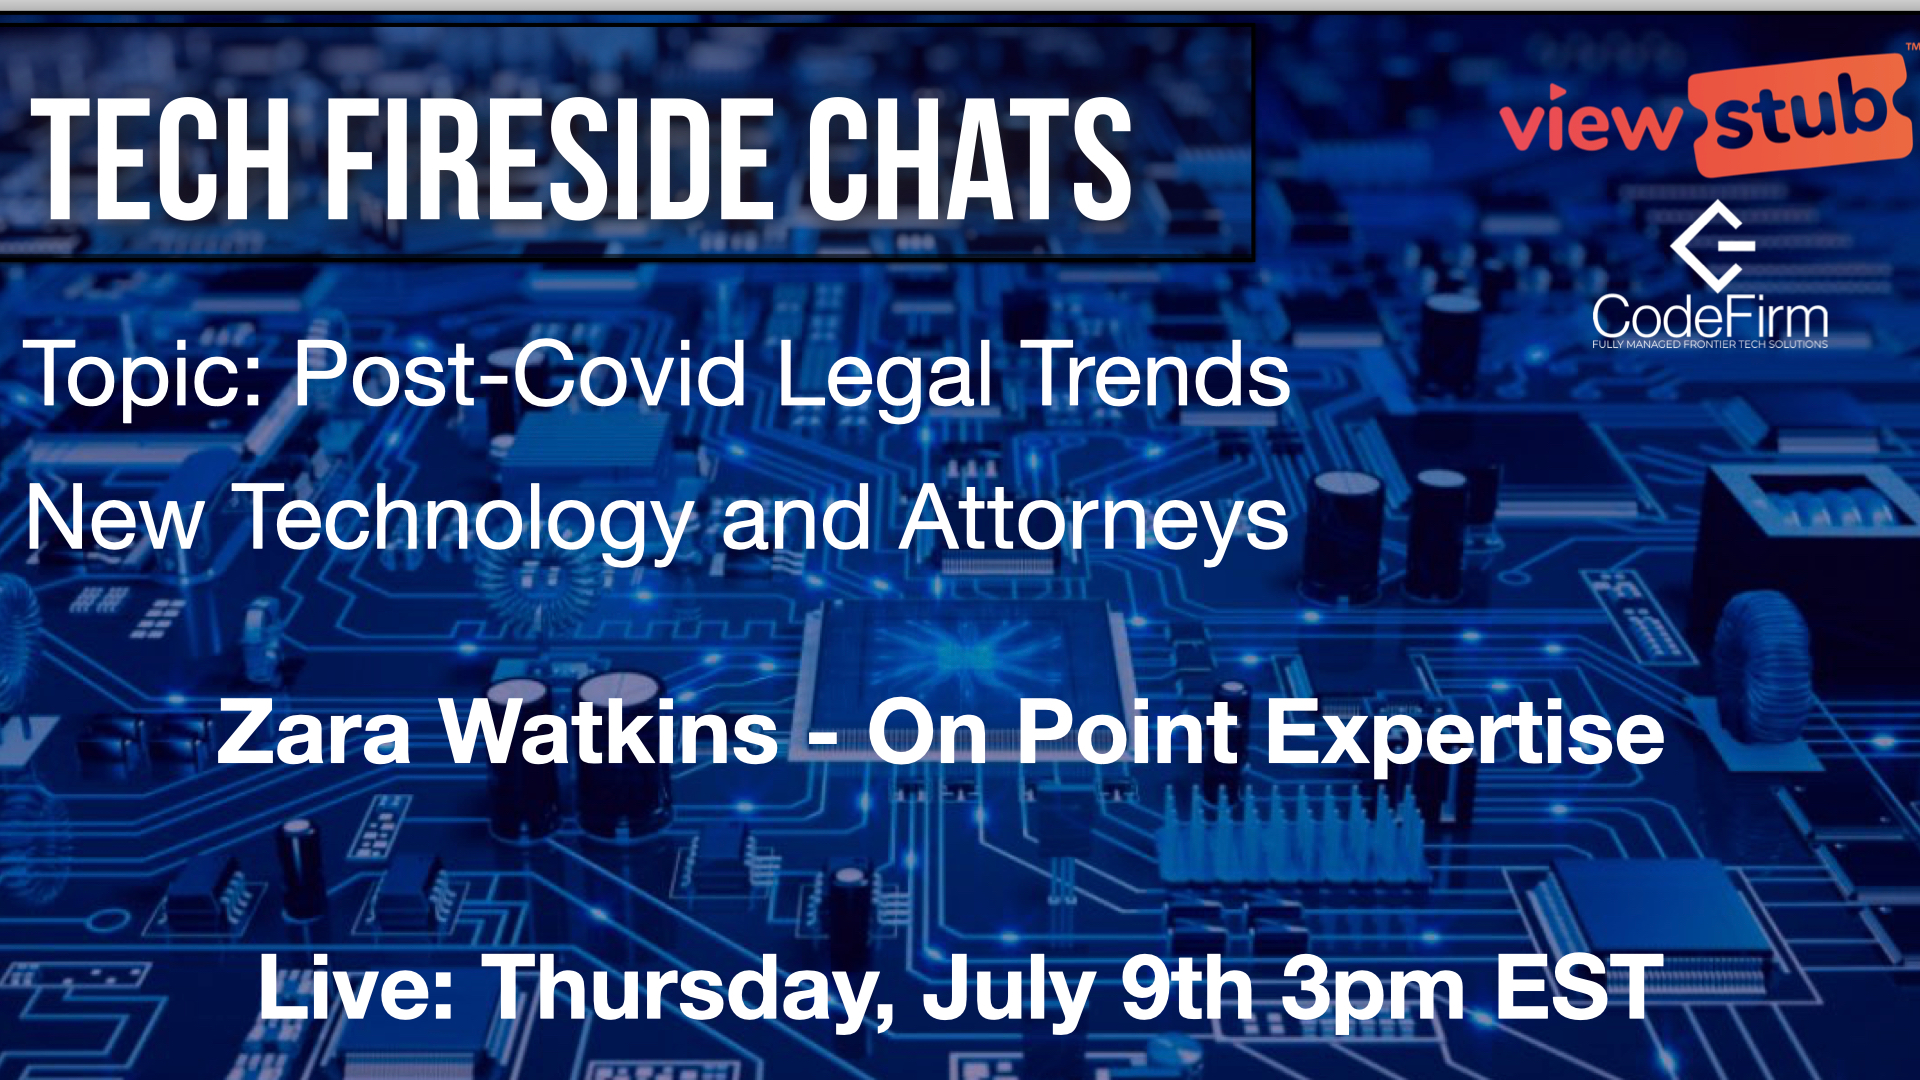 Thumbnail for Post-Covid Legal Trends and Technology on ViewStub